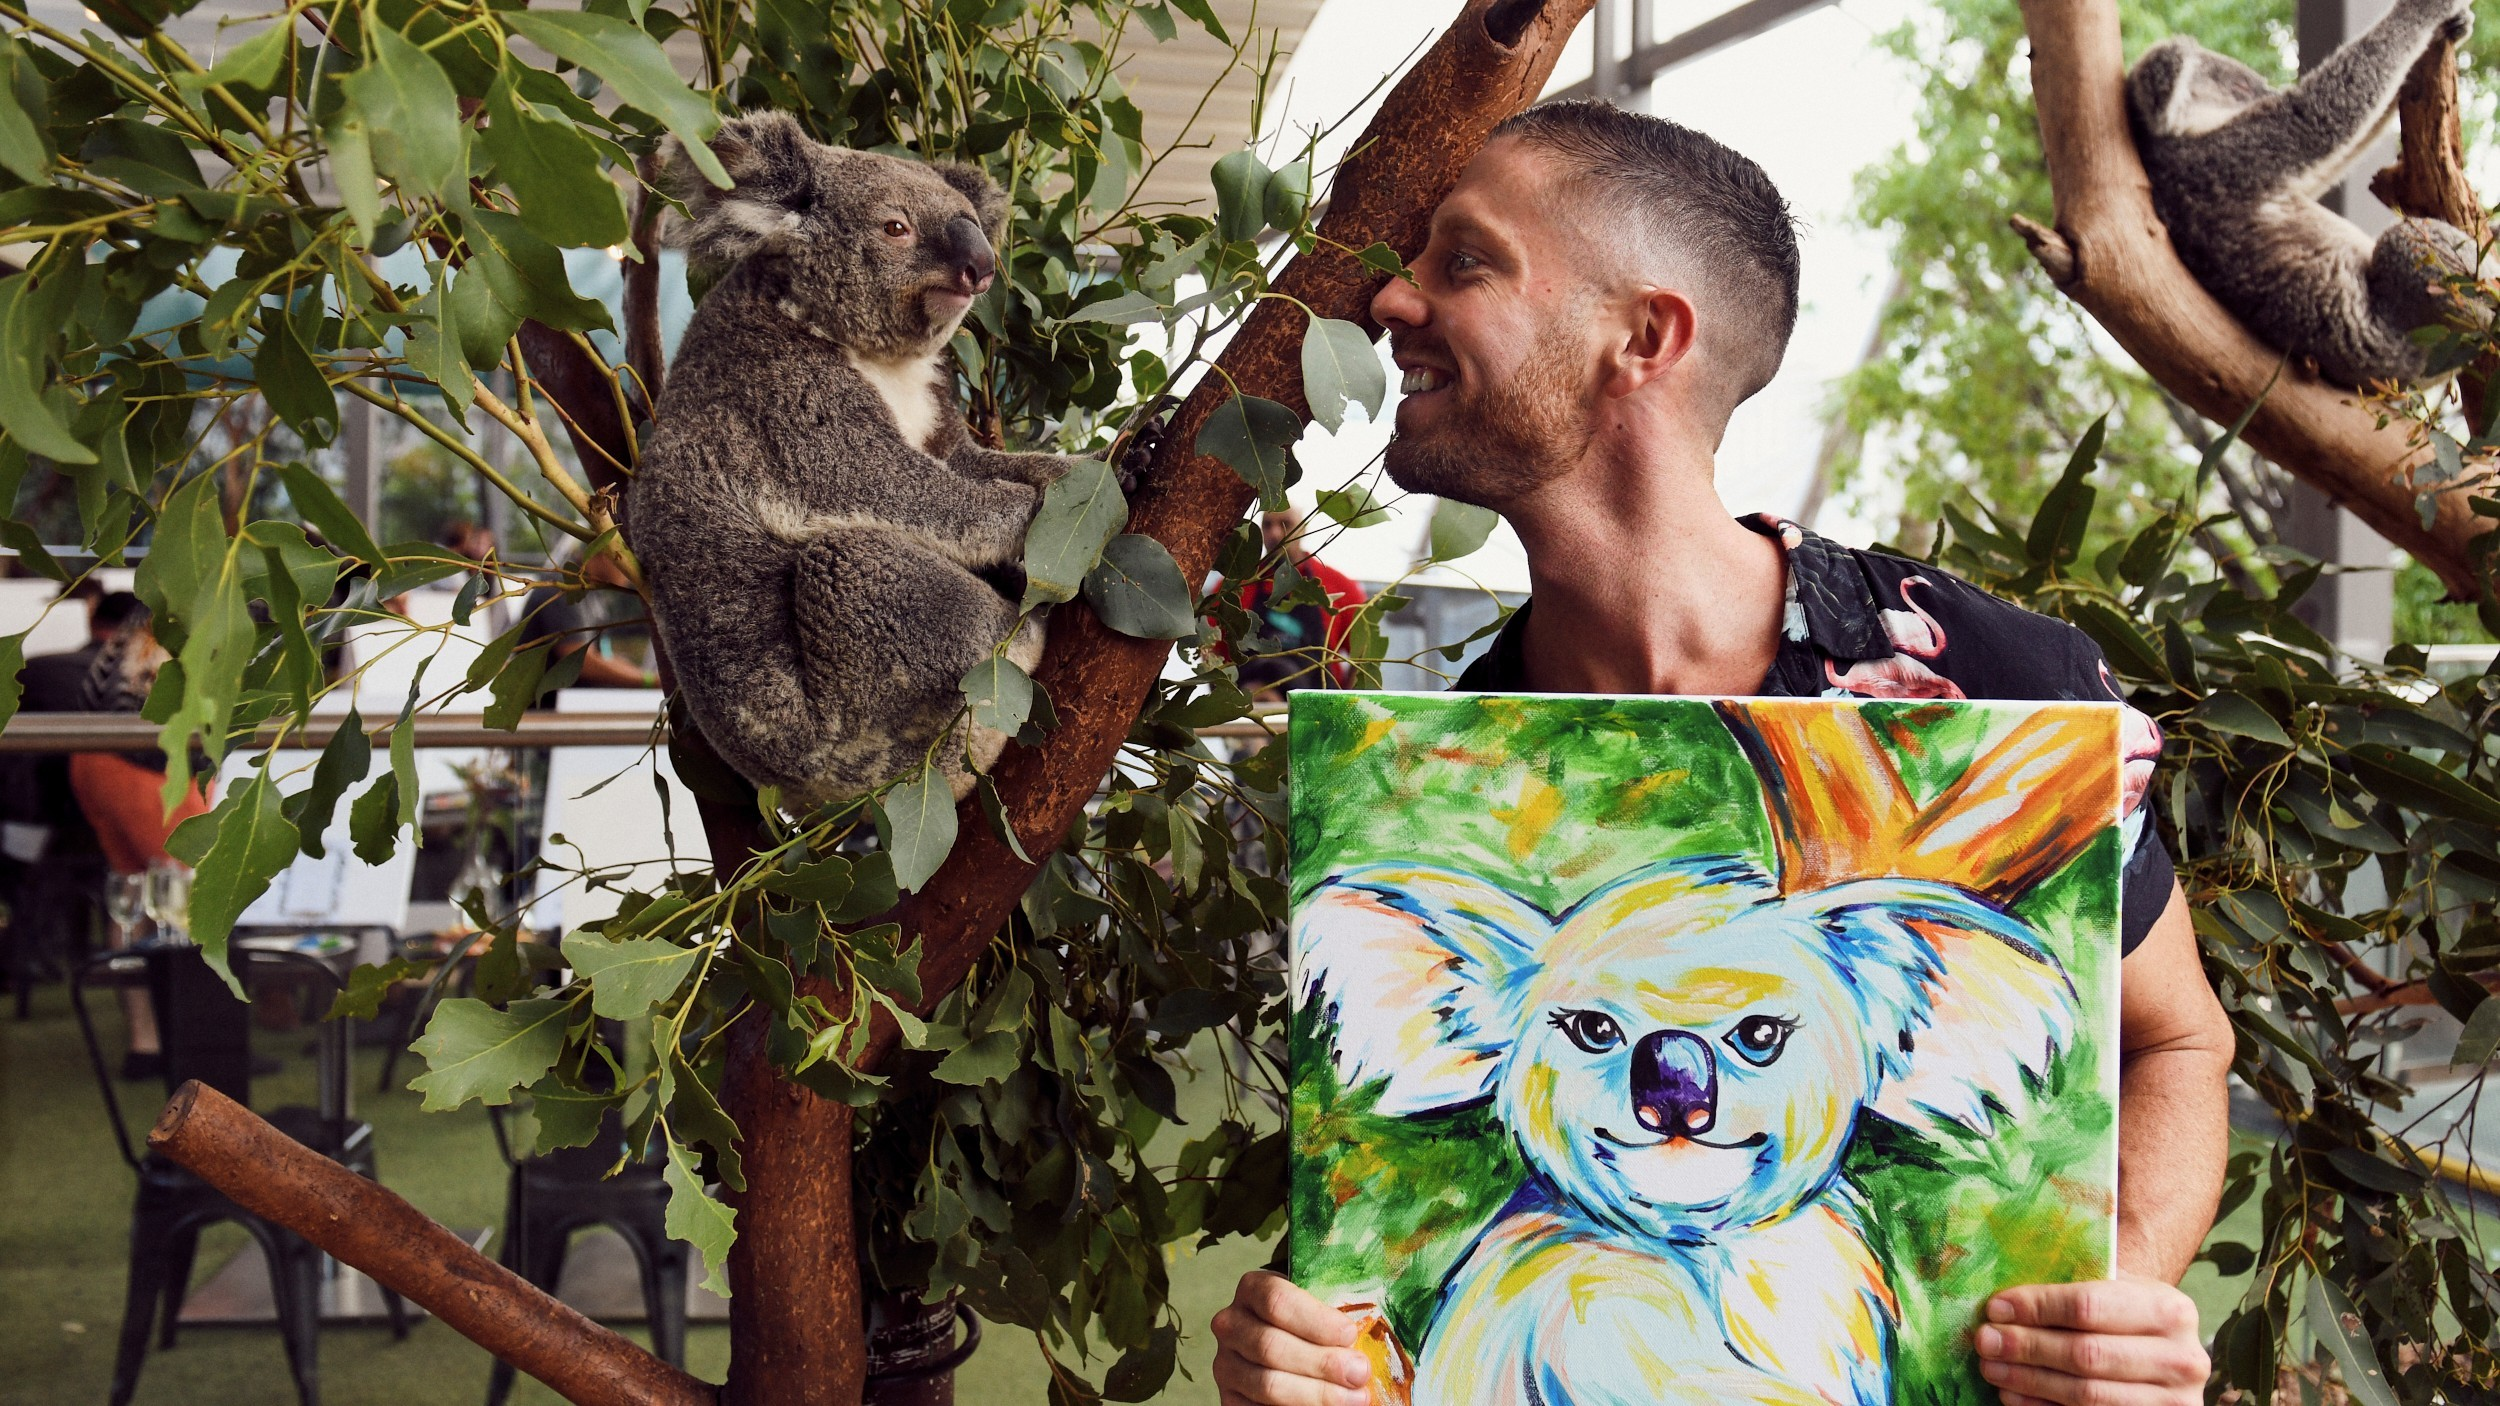 Champainting at Wild Life Sydney Zoo